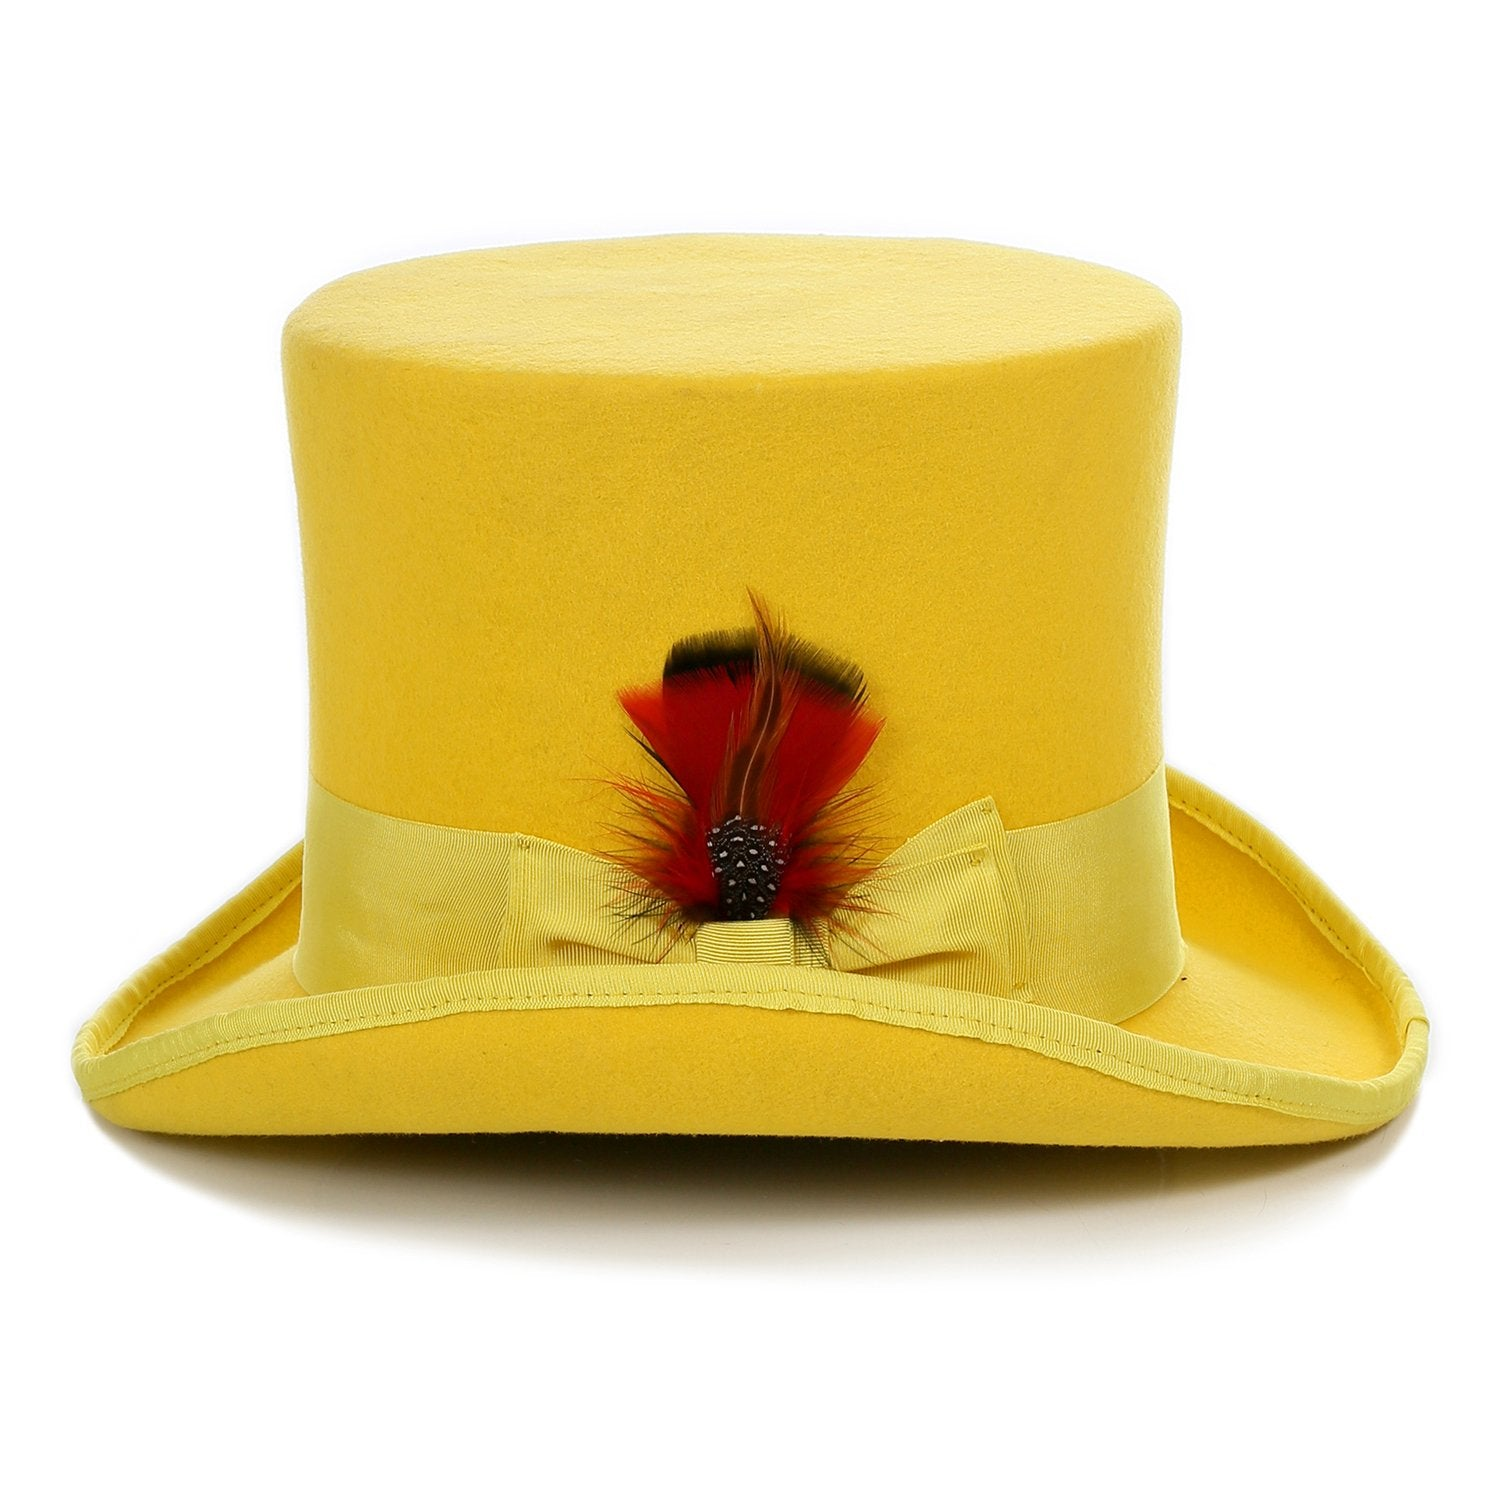 Premium Wool Yellow Victorian Top Hat - Giorgio's Menswear